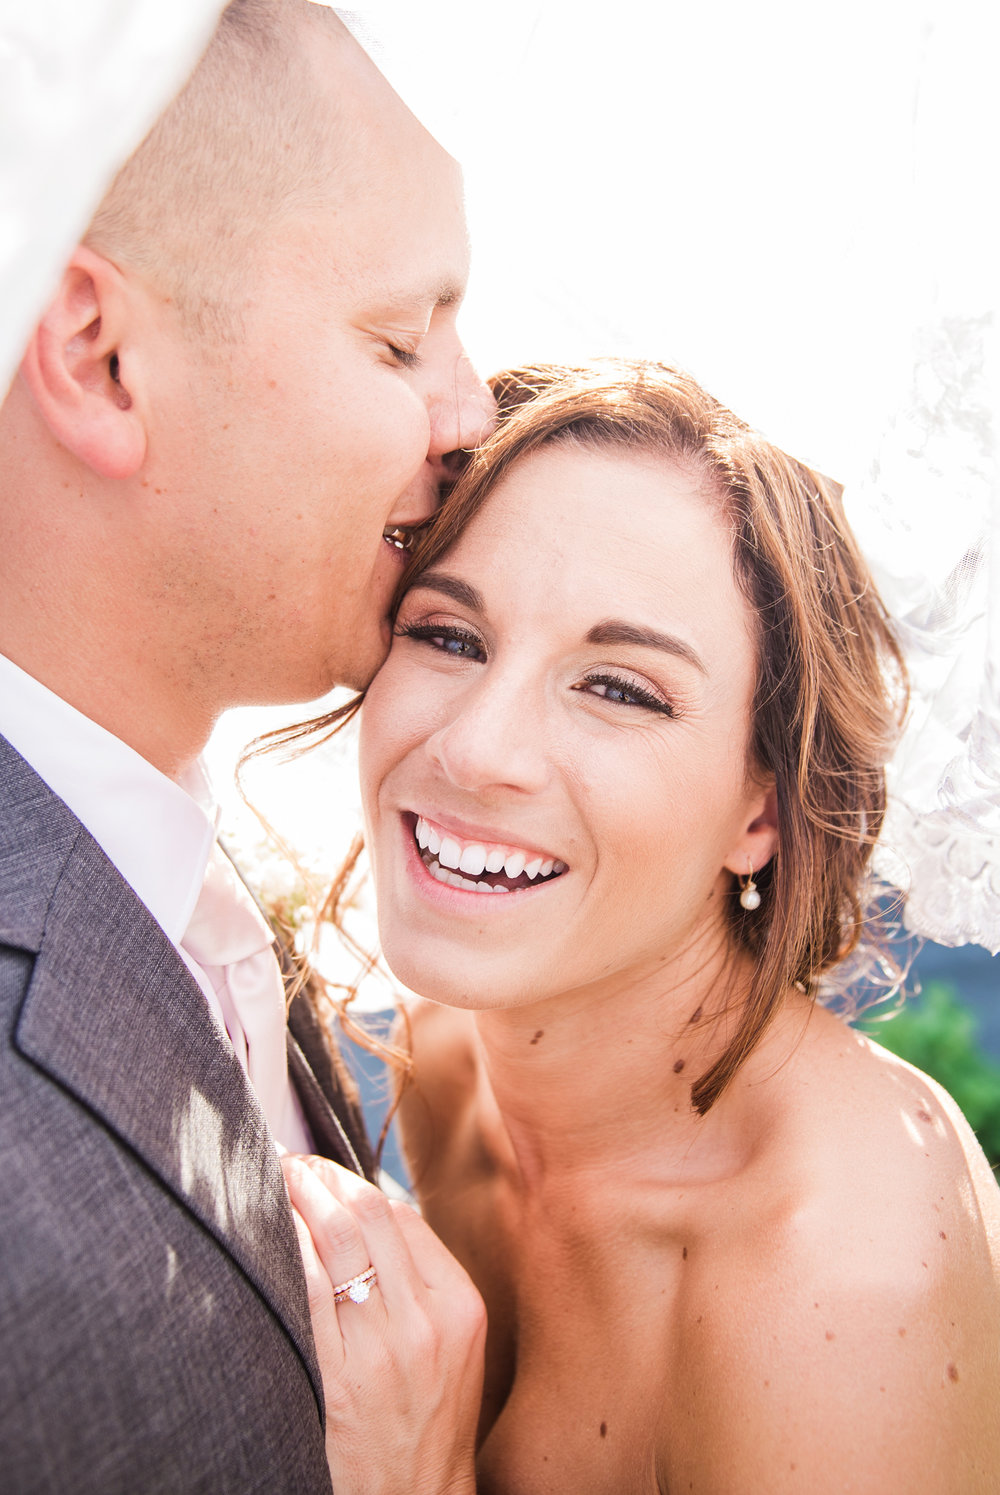 Wolf_Oak_Acres_Central_NY_Wedding_JILL_STUDIO_Rochester_NY_Photographer_DSC_5464.jpg